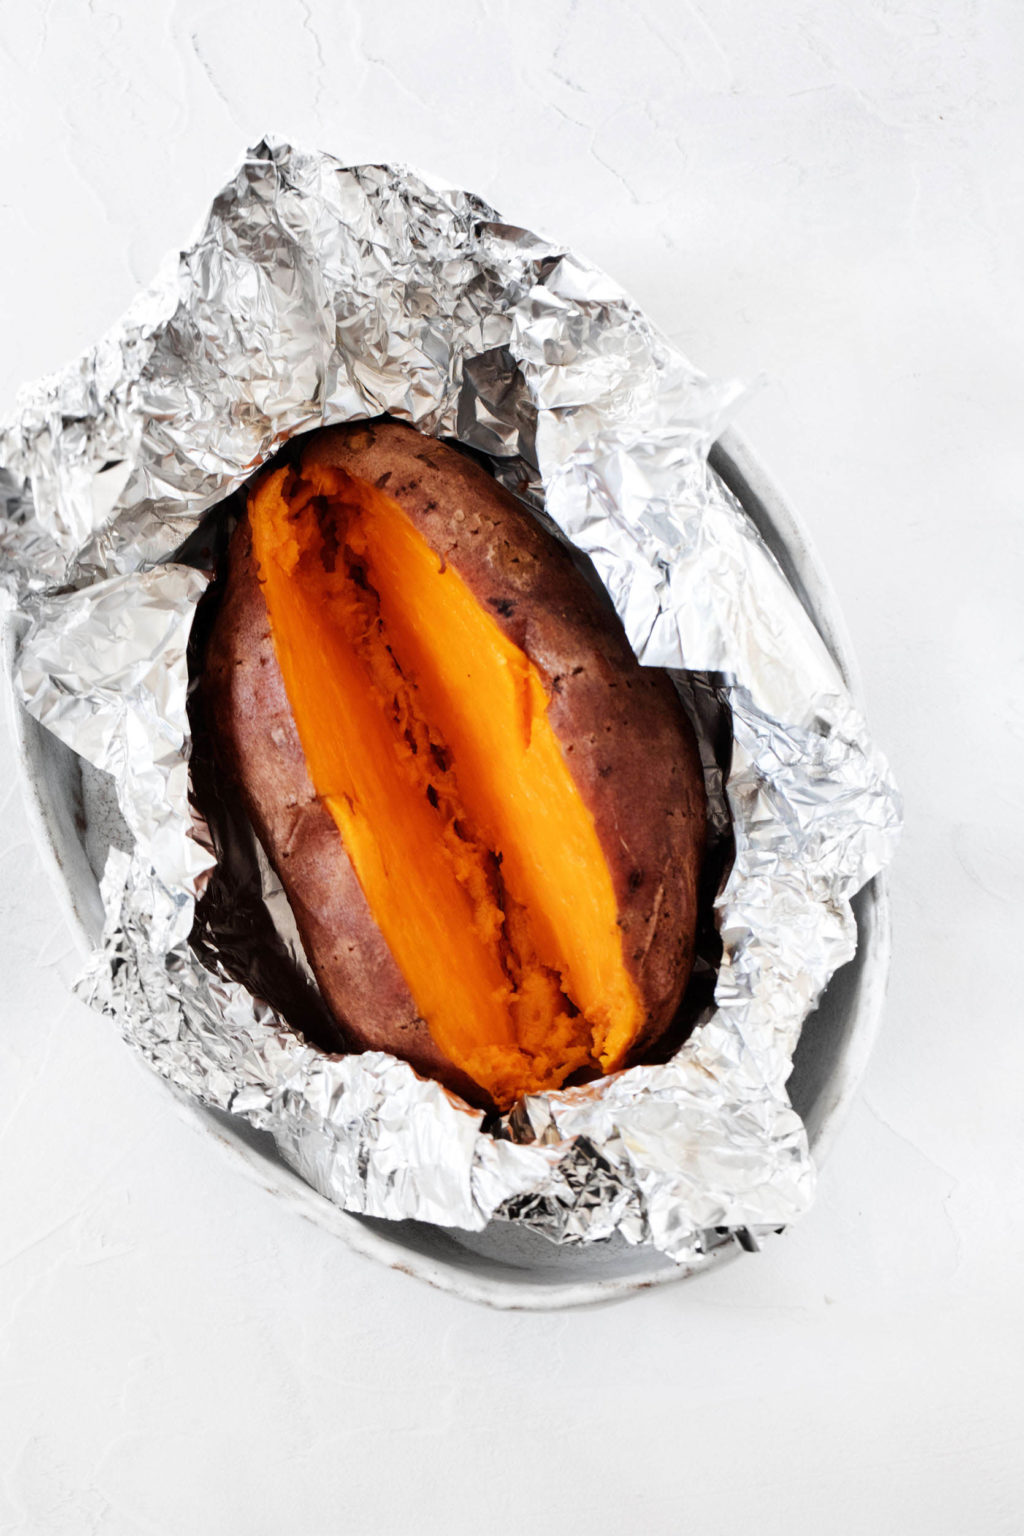 A roasted sweet potato is being stored in crumpled aluminum foil.